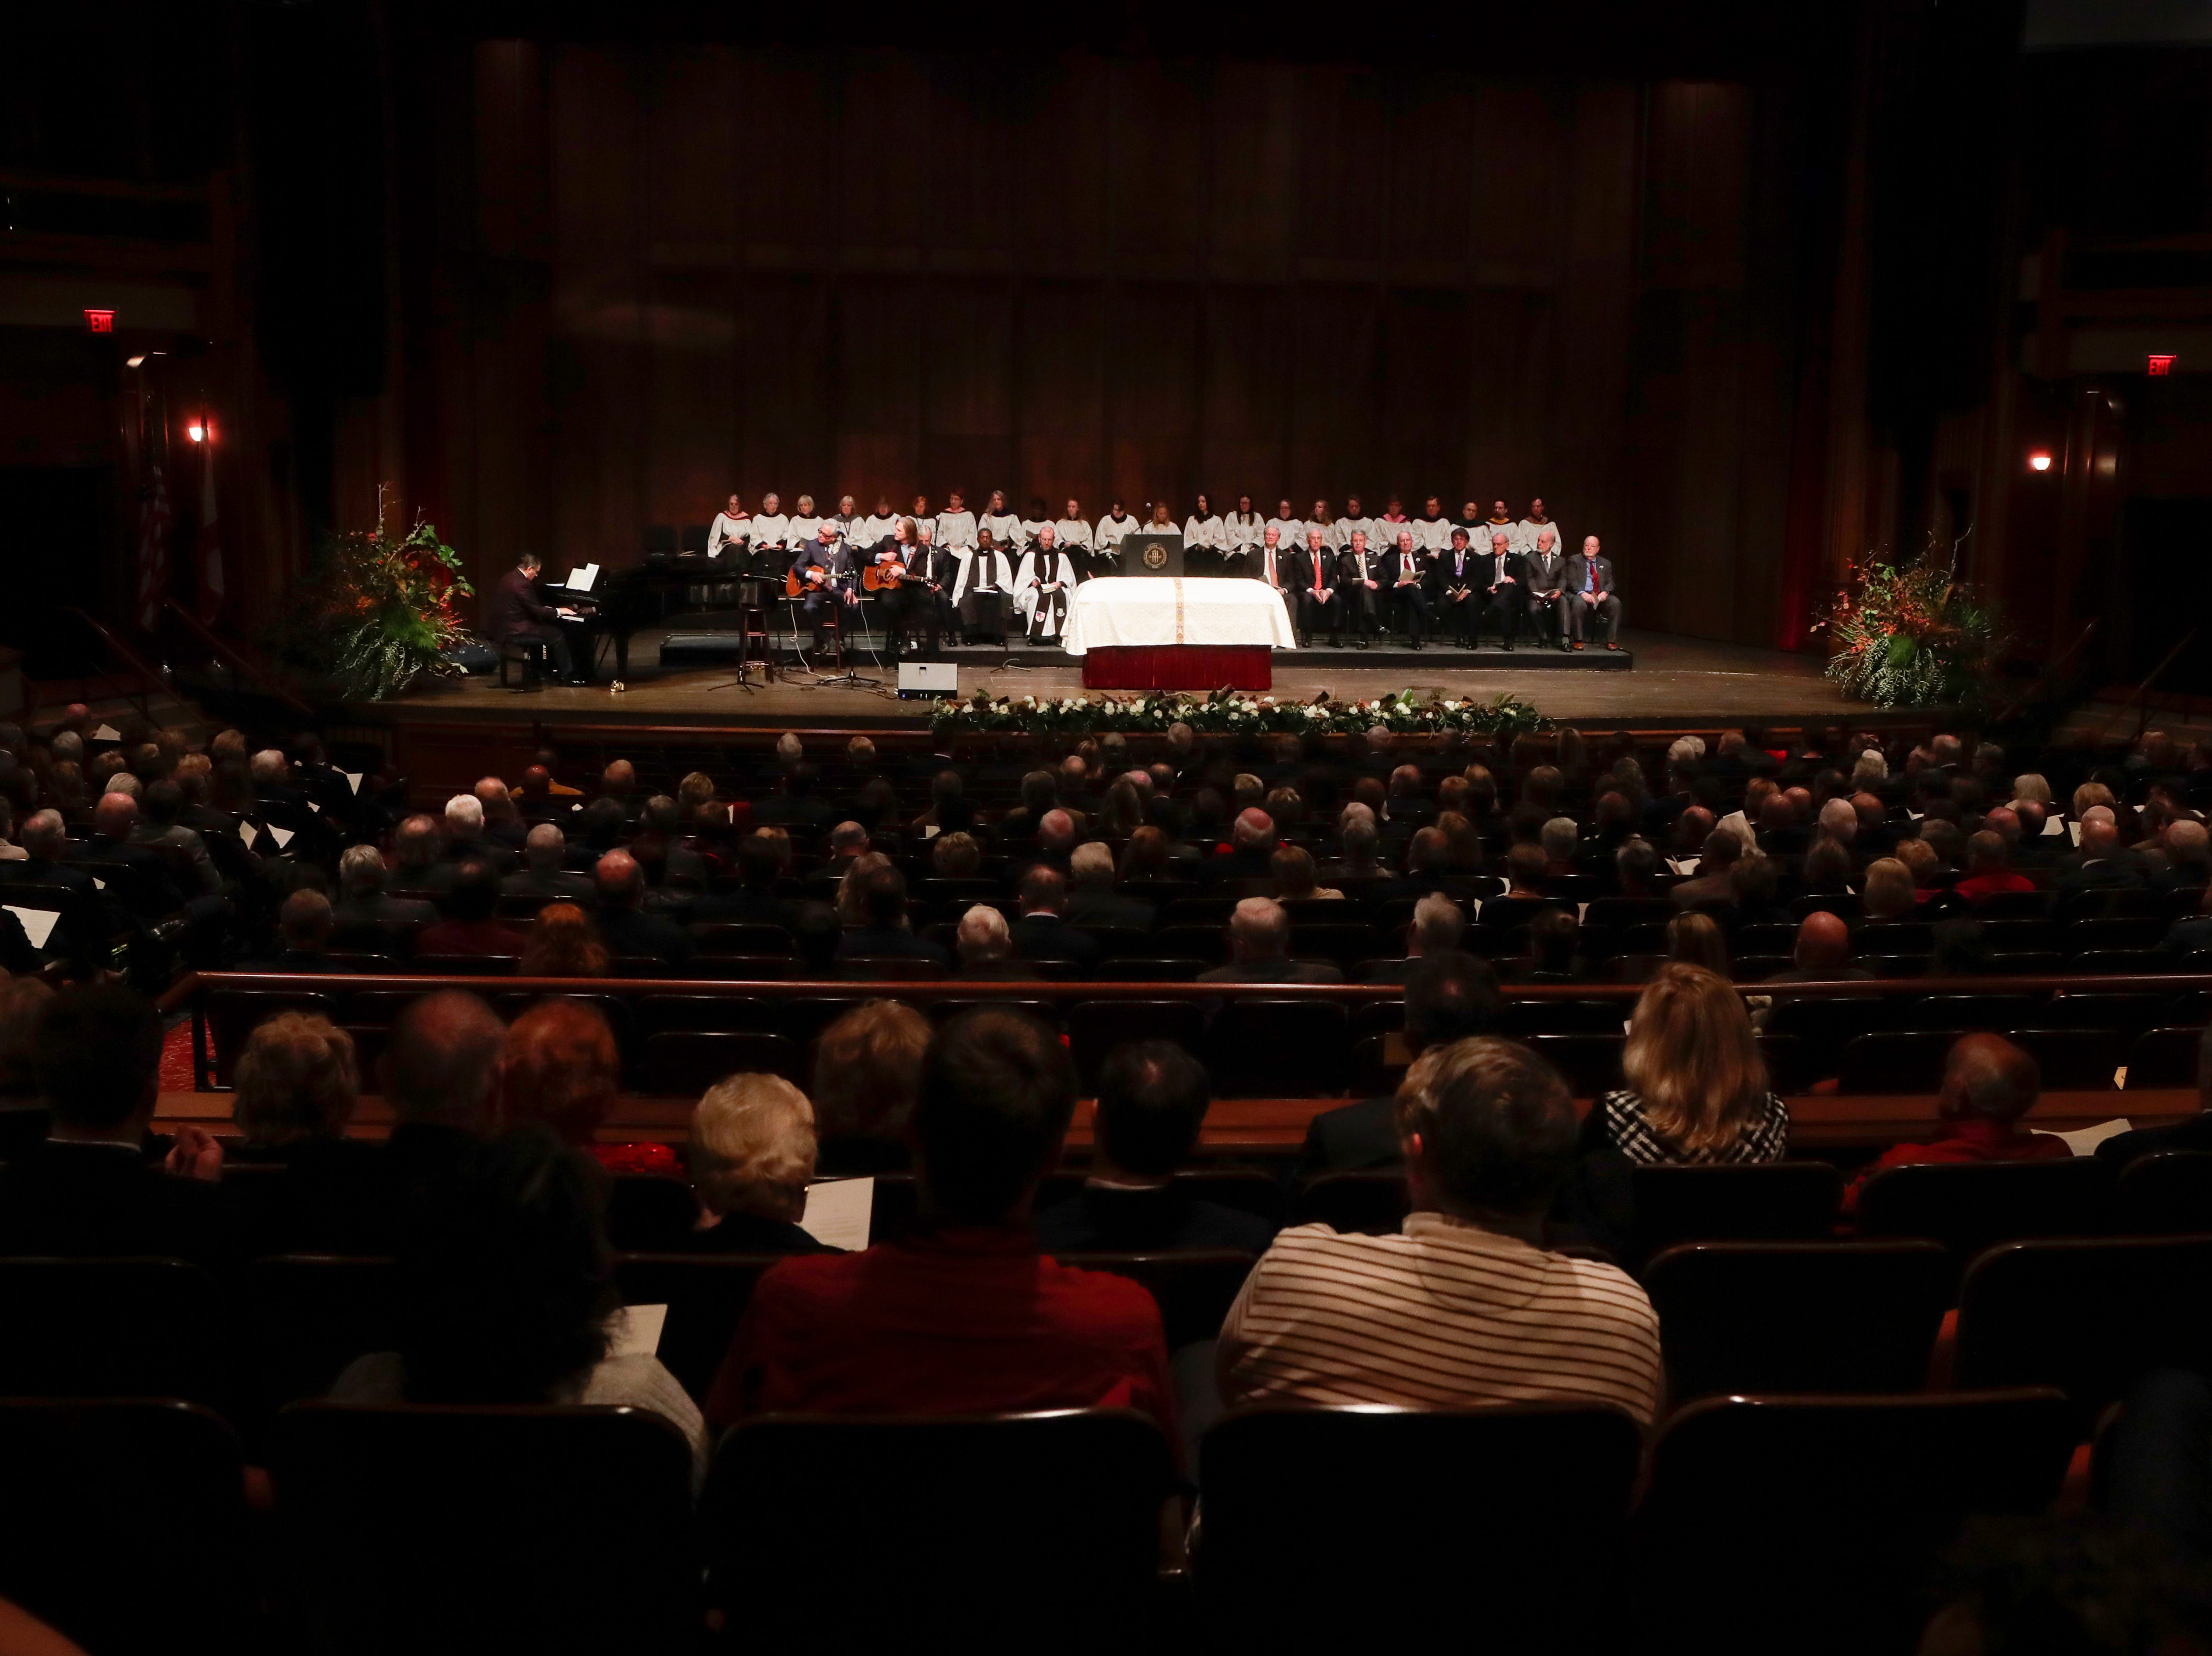 Florida State University President Emeritus T.K. Wetherell's casket sits in the center of the stage during a funeral service for Wetherell held at Ruby Diamond Concert Hall Friday, Dec. 21, 2018.